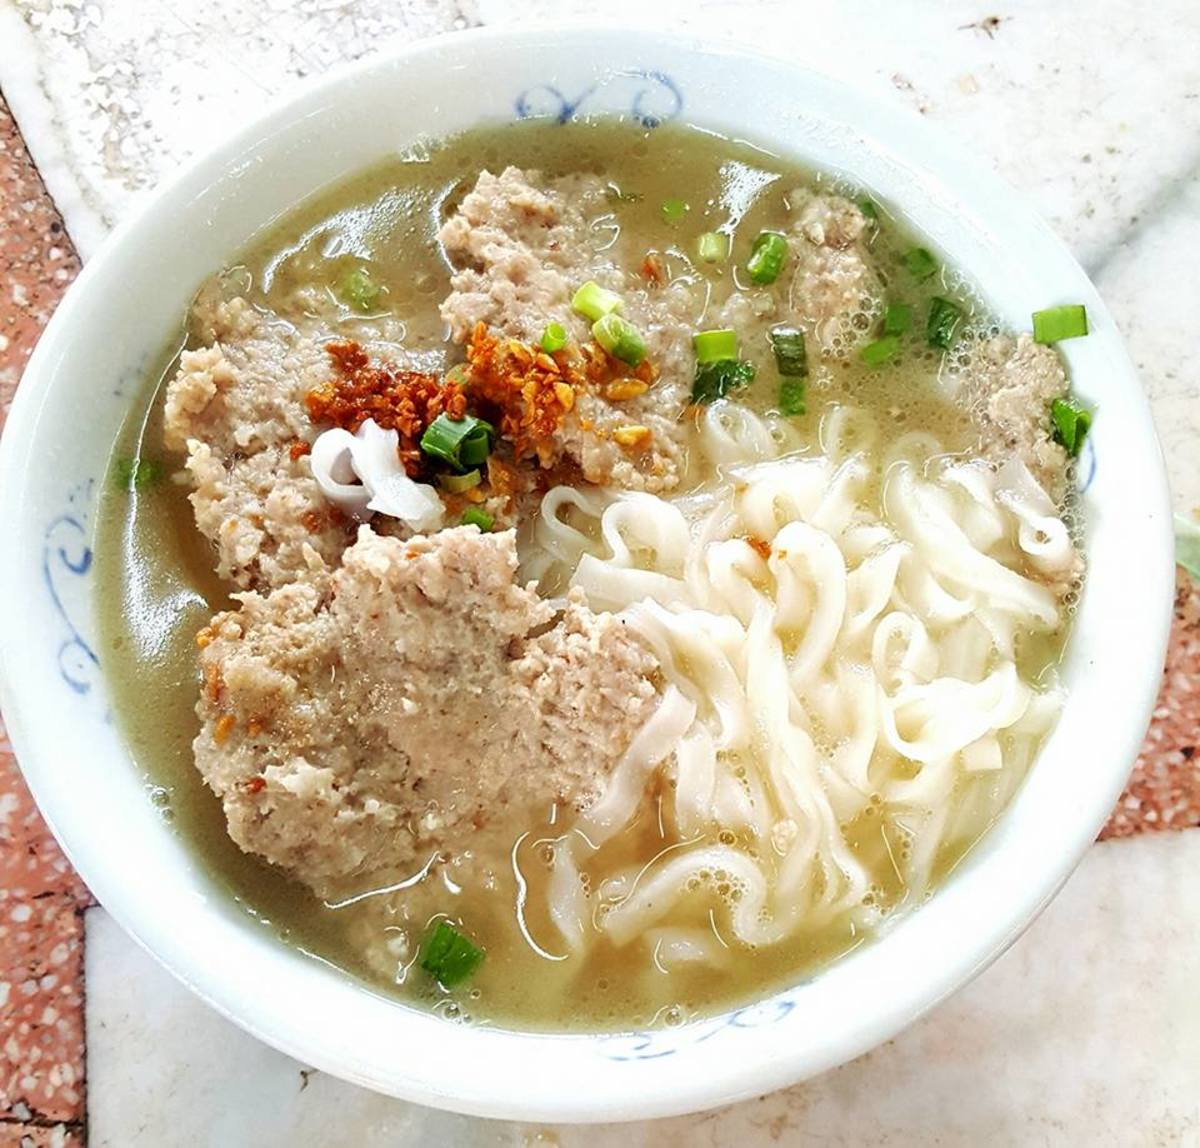 Pork Noodles from a famous restaurant in Ipoh Garden South.